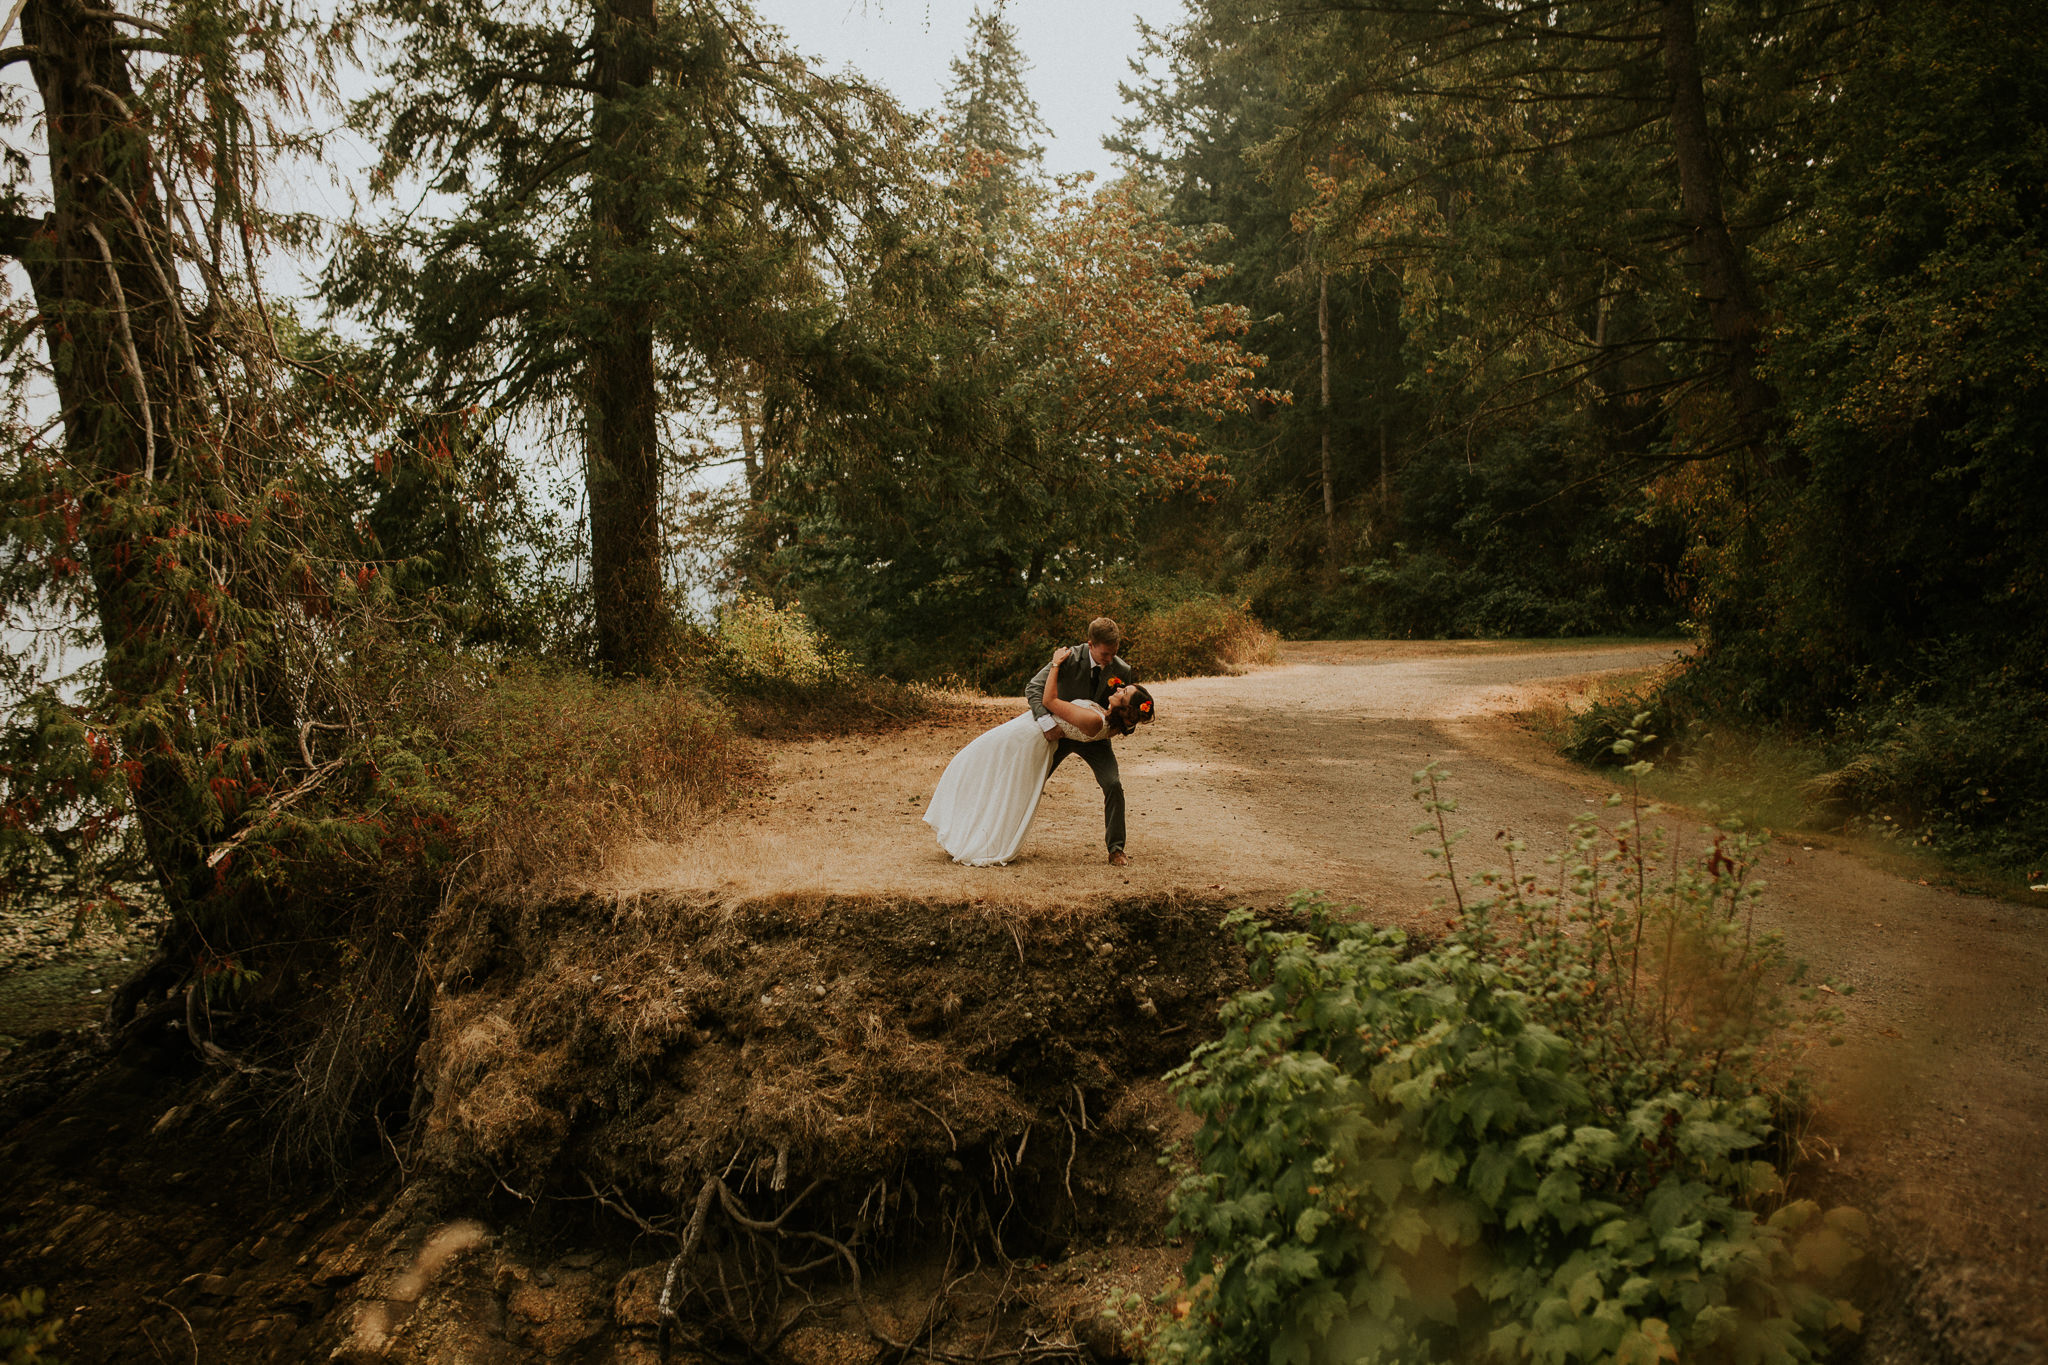 Port-Orchard-Manchester-Park-elopement-Bride-And-Groom-123.jpg